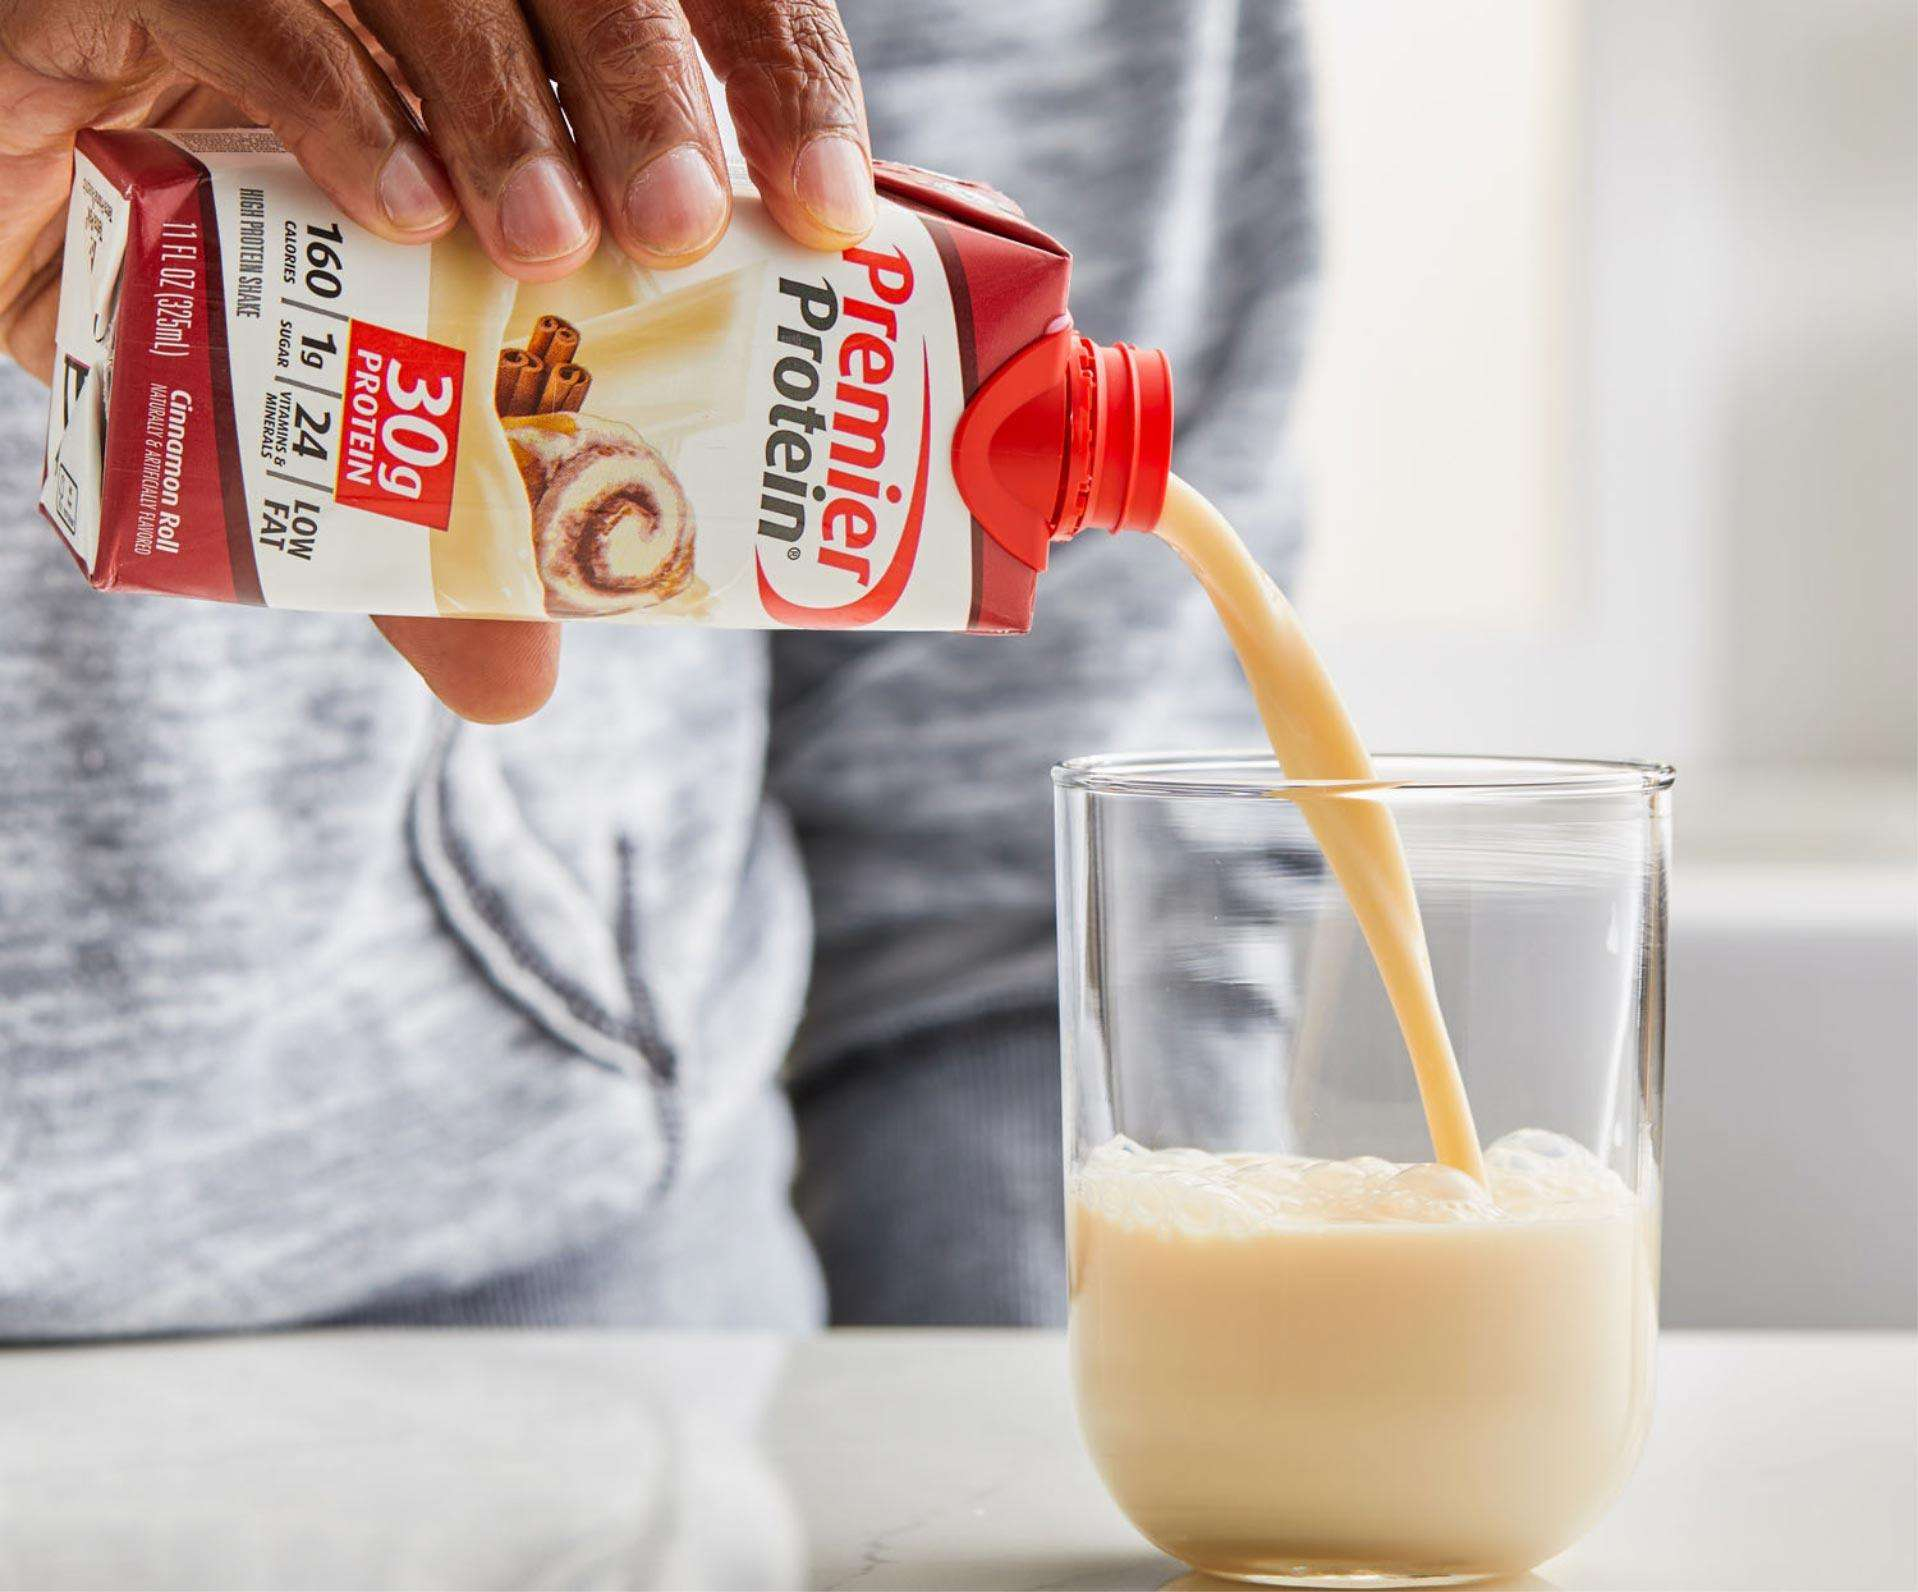 Cinnamon Roll Premier Protein Shake being poured into a cup.